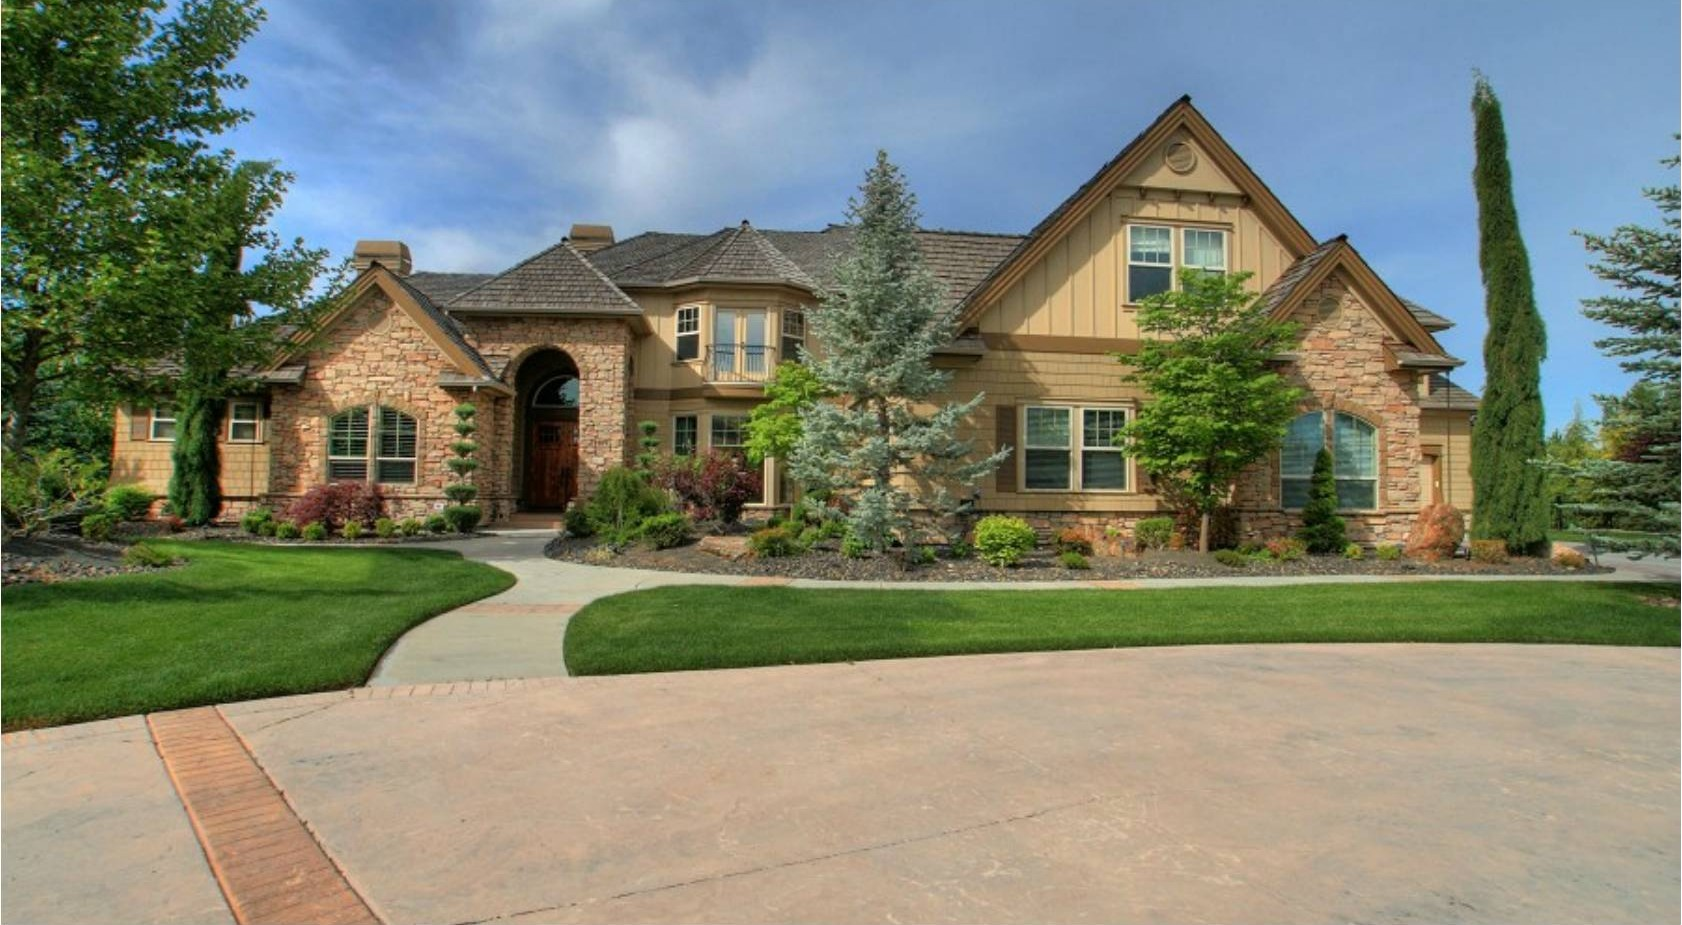 boise eagle meridian idaho mls real estate for sale